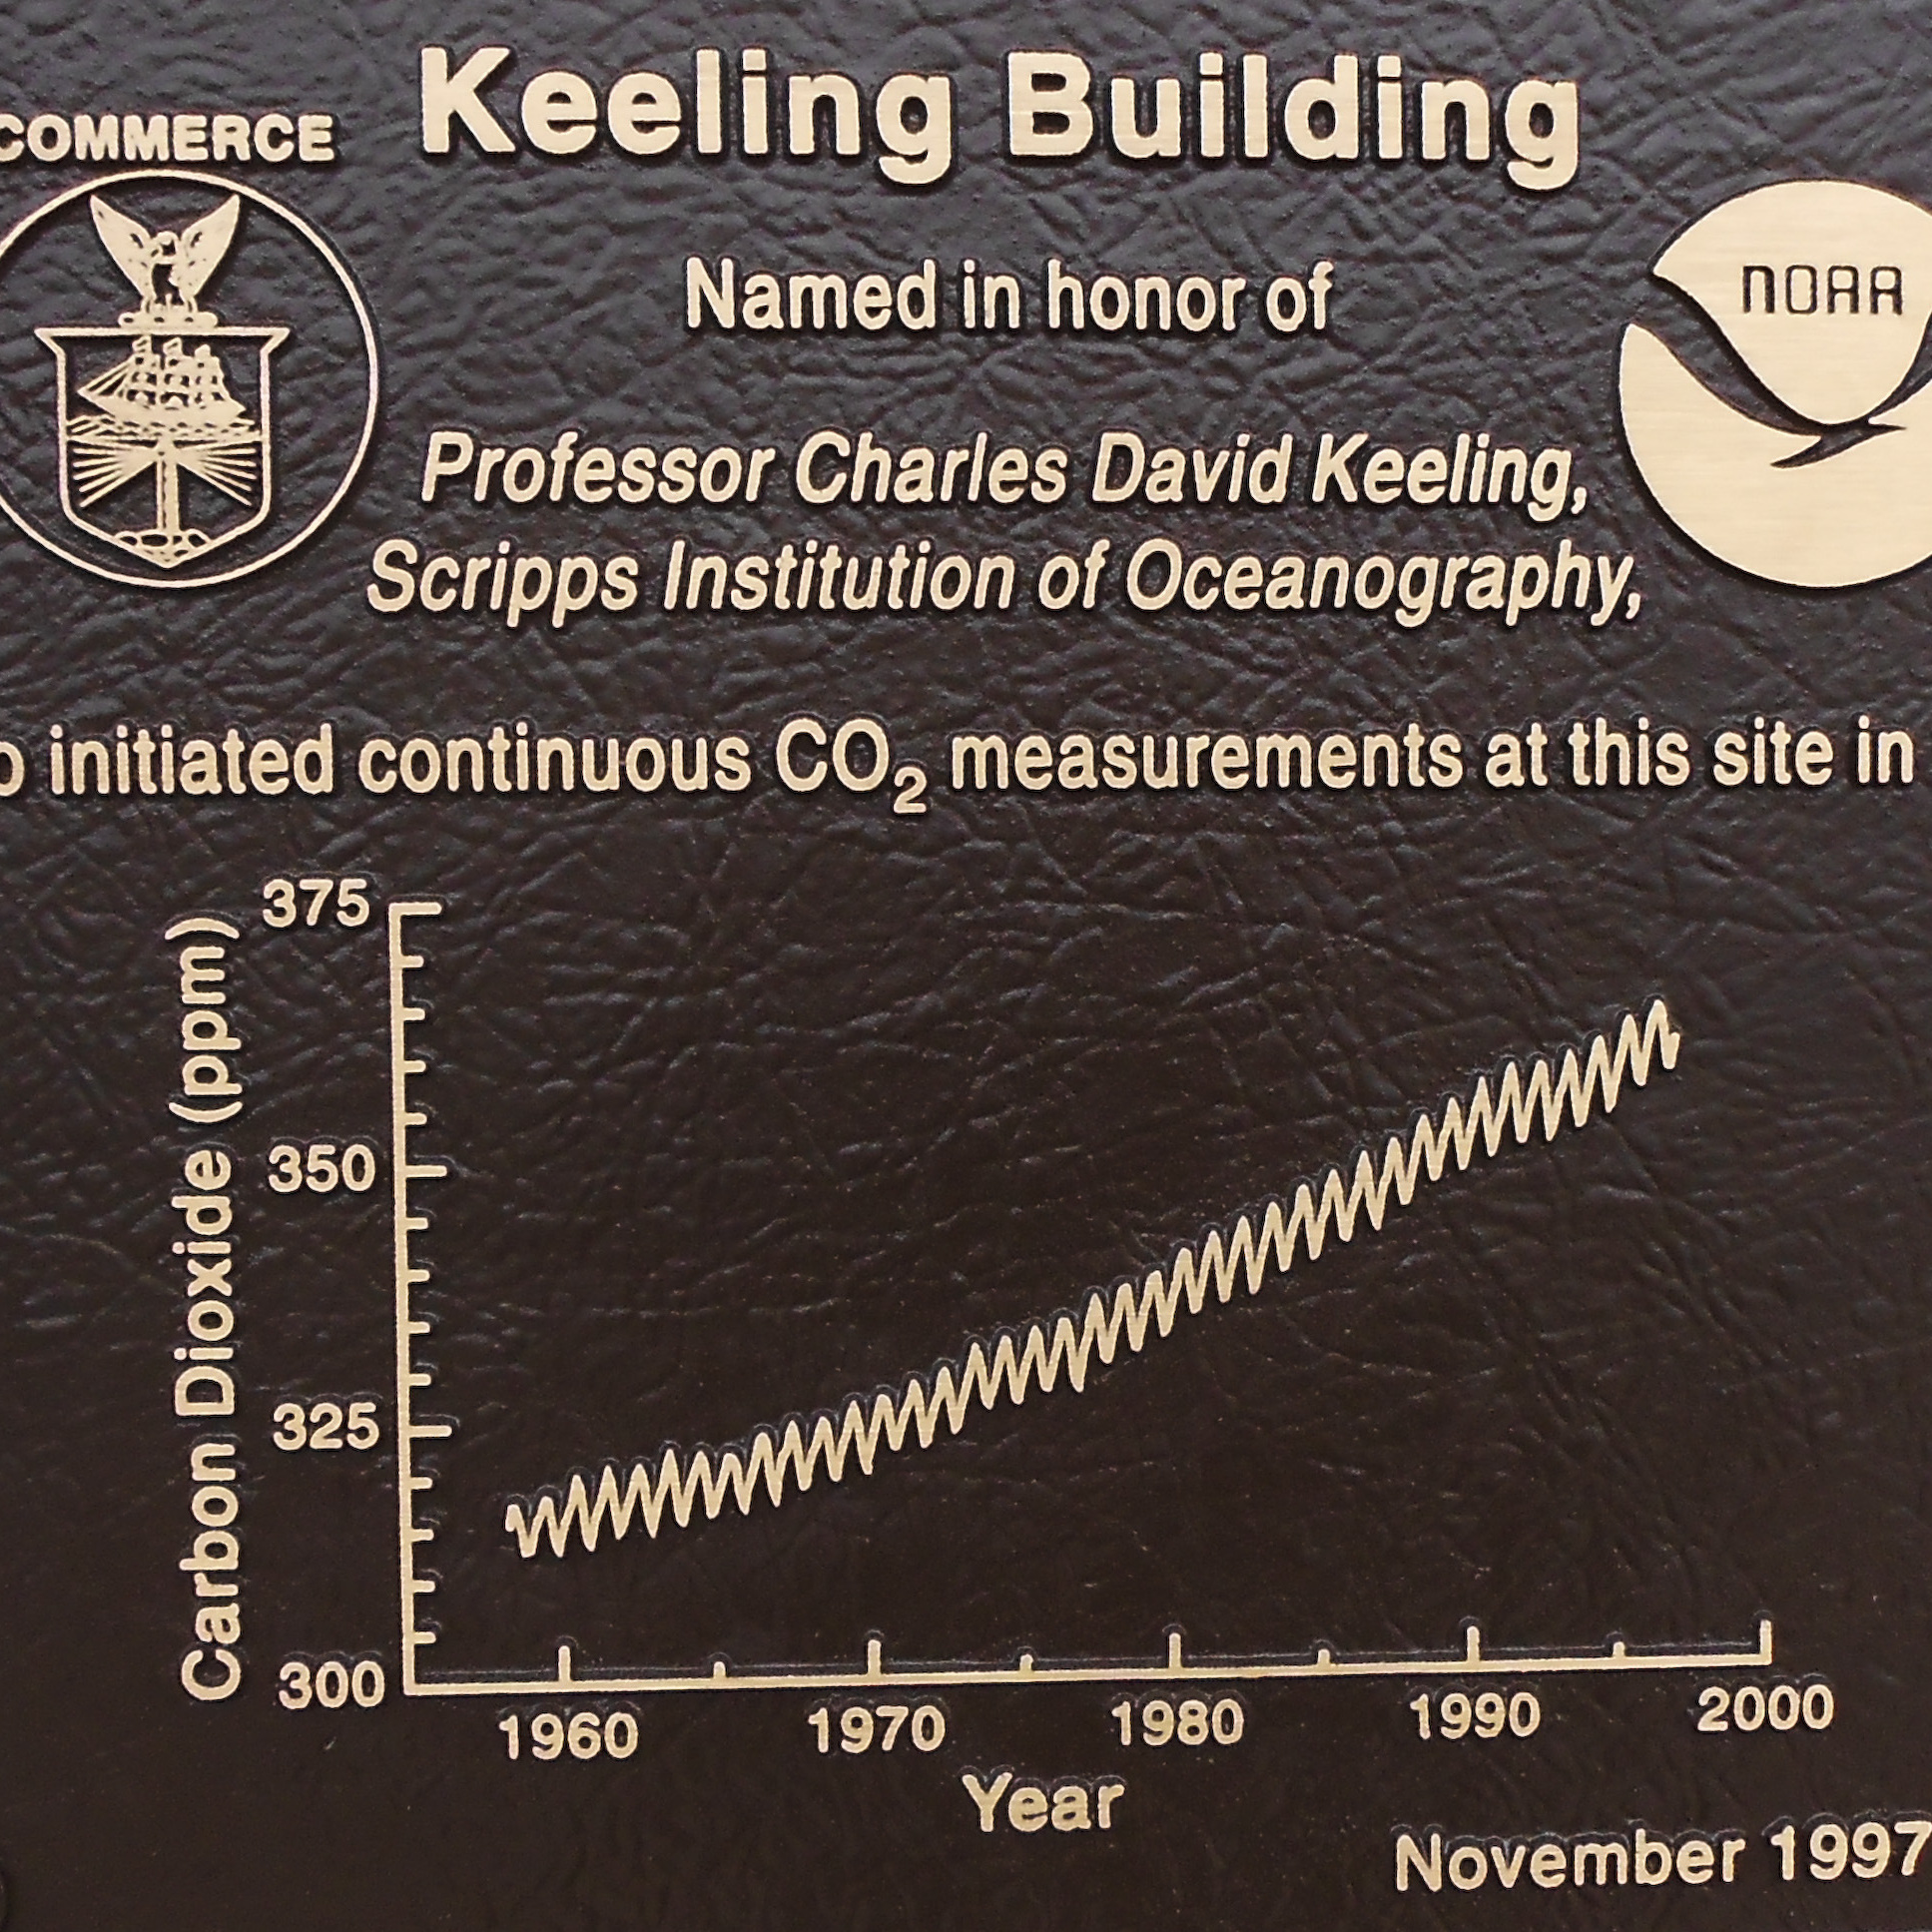 A plaque honoring geochemist Charles David Keeling marks the entrance to a building at the Mauna Loa Observatory in Hawaii. In 1958, Keeling began continuous atmospheric monitoring of carbon dioxide levels.